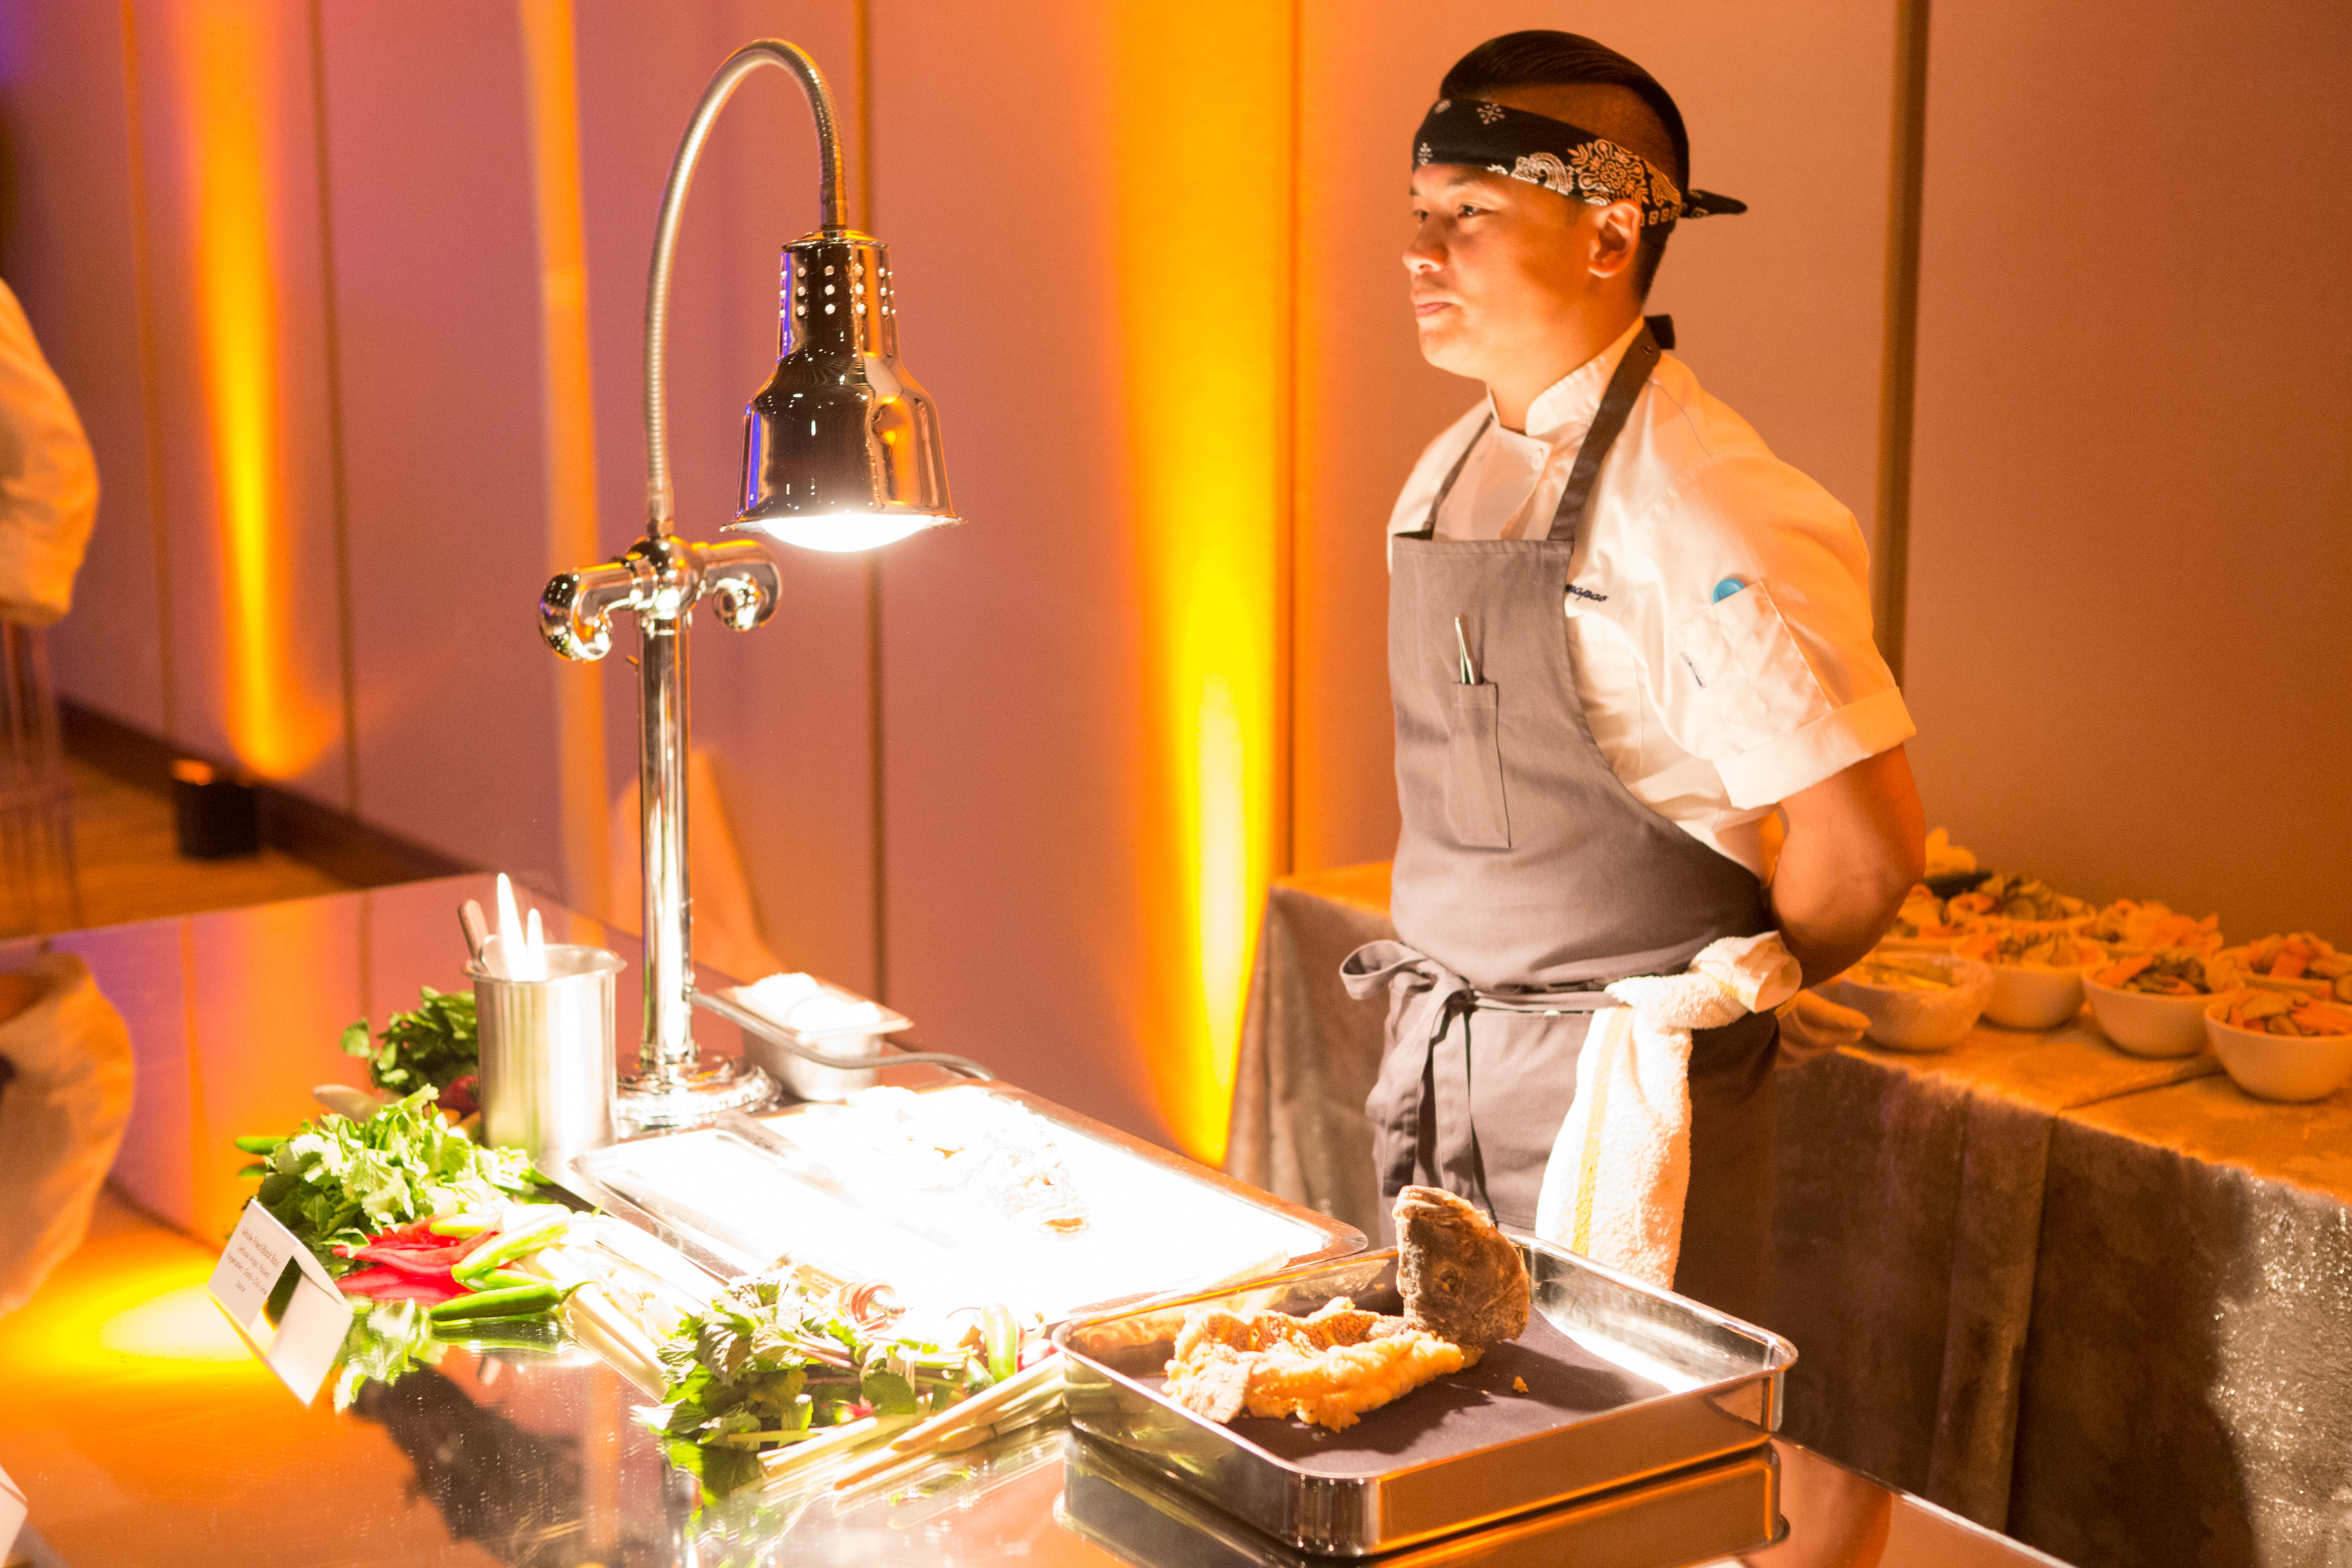 Chef Dion ready to serve Whole Black Bass served in Lettuce Cups with Garlic-Chili-Lime Sauce